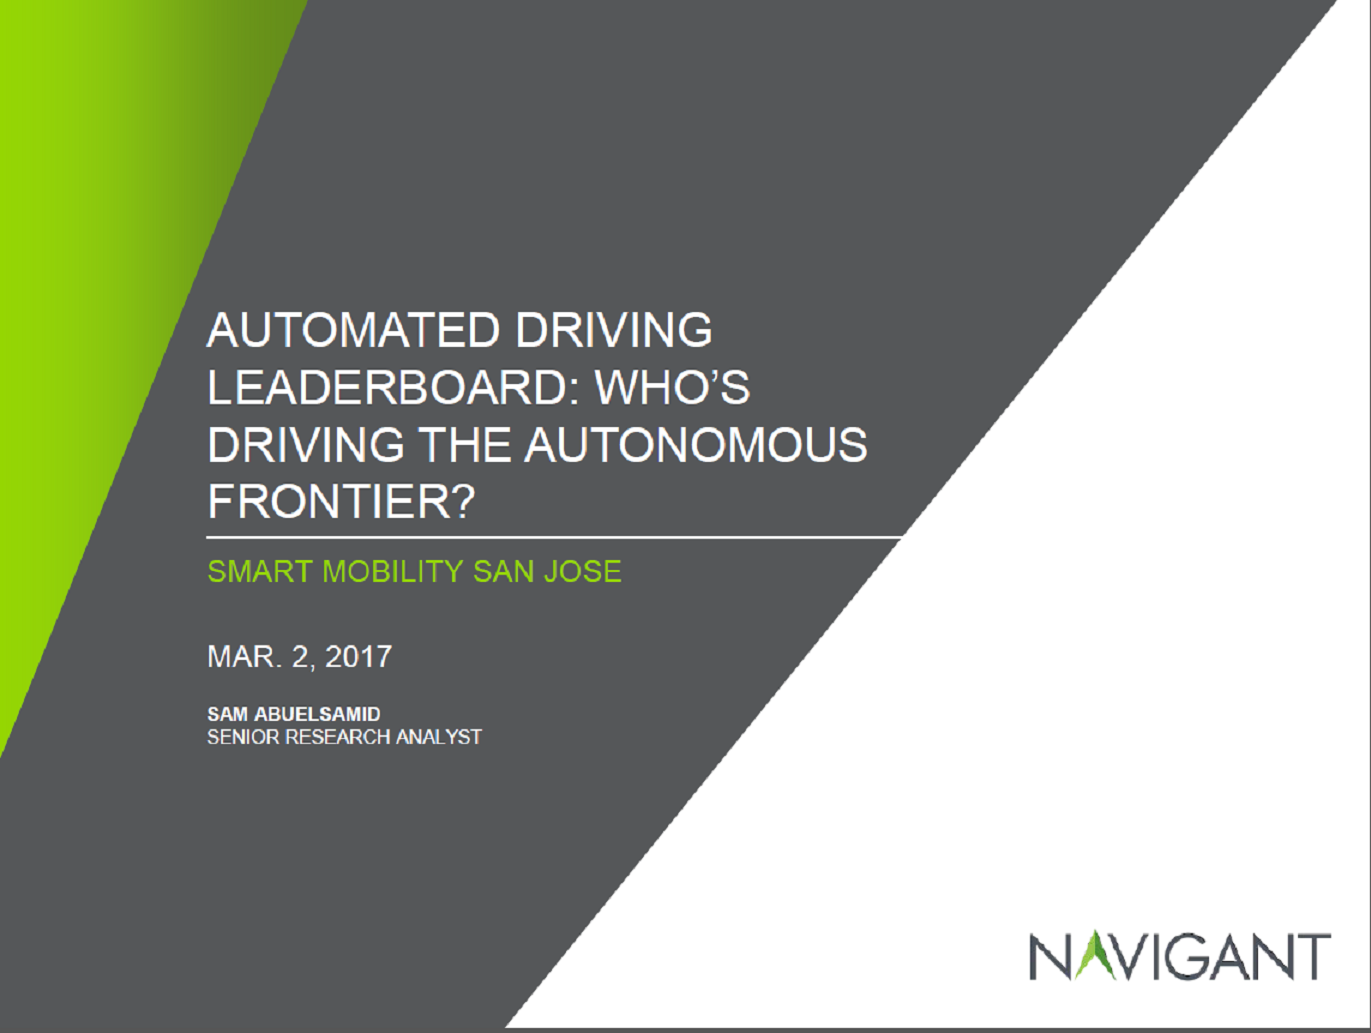 Automated Driving Leaderboard: Who's Driving the Next Frontier of Autonomy?